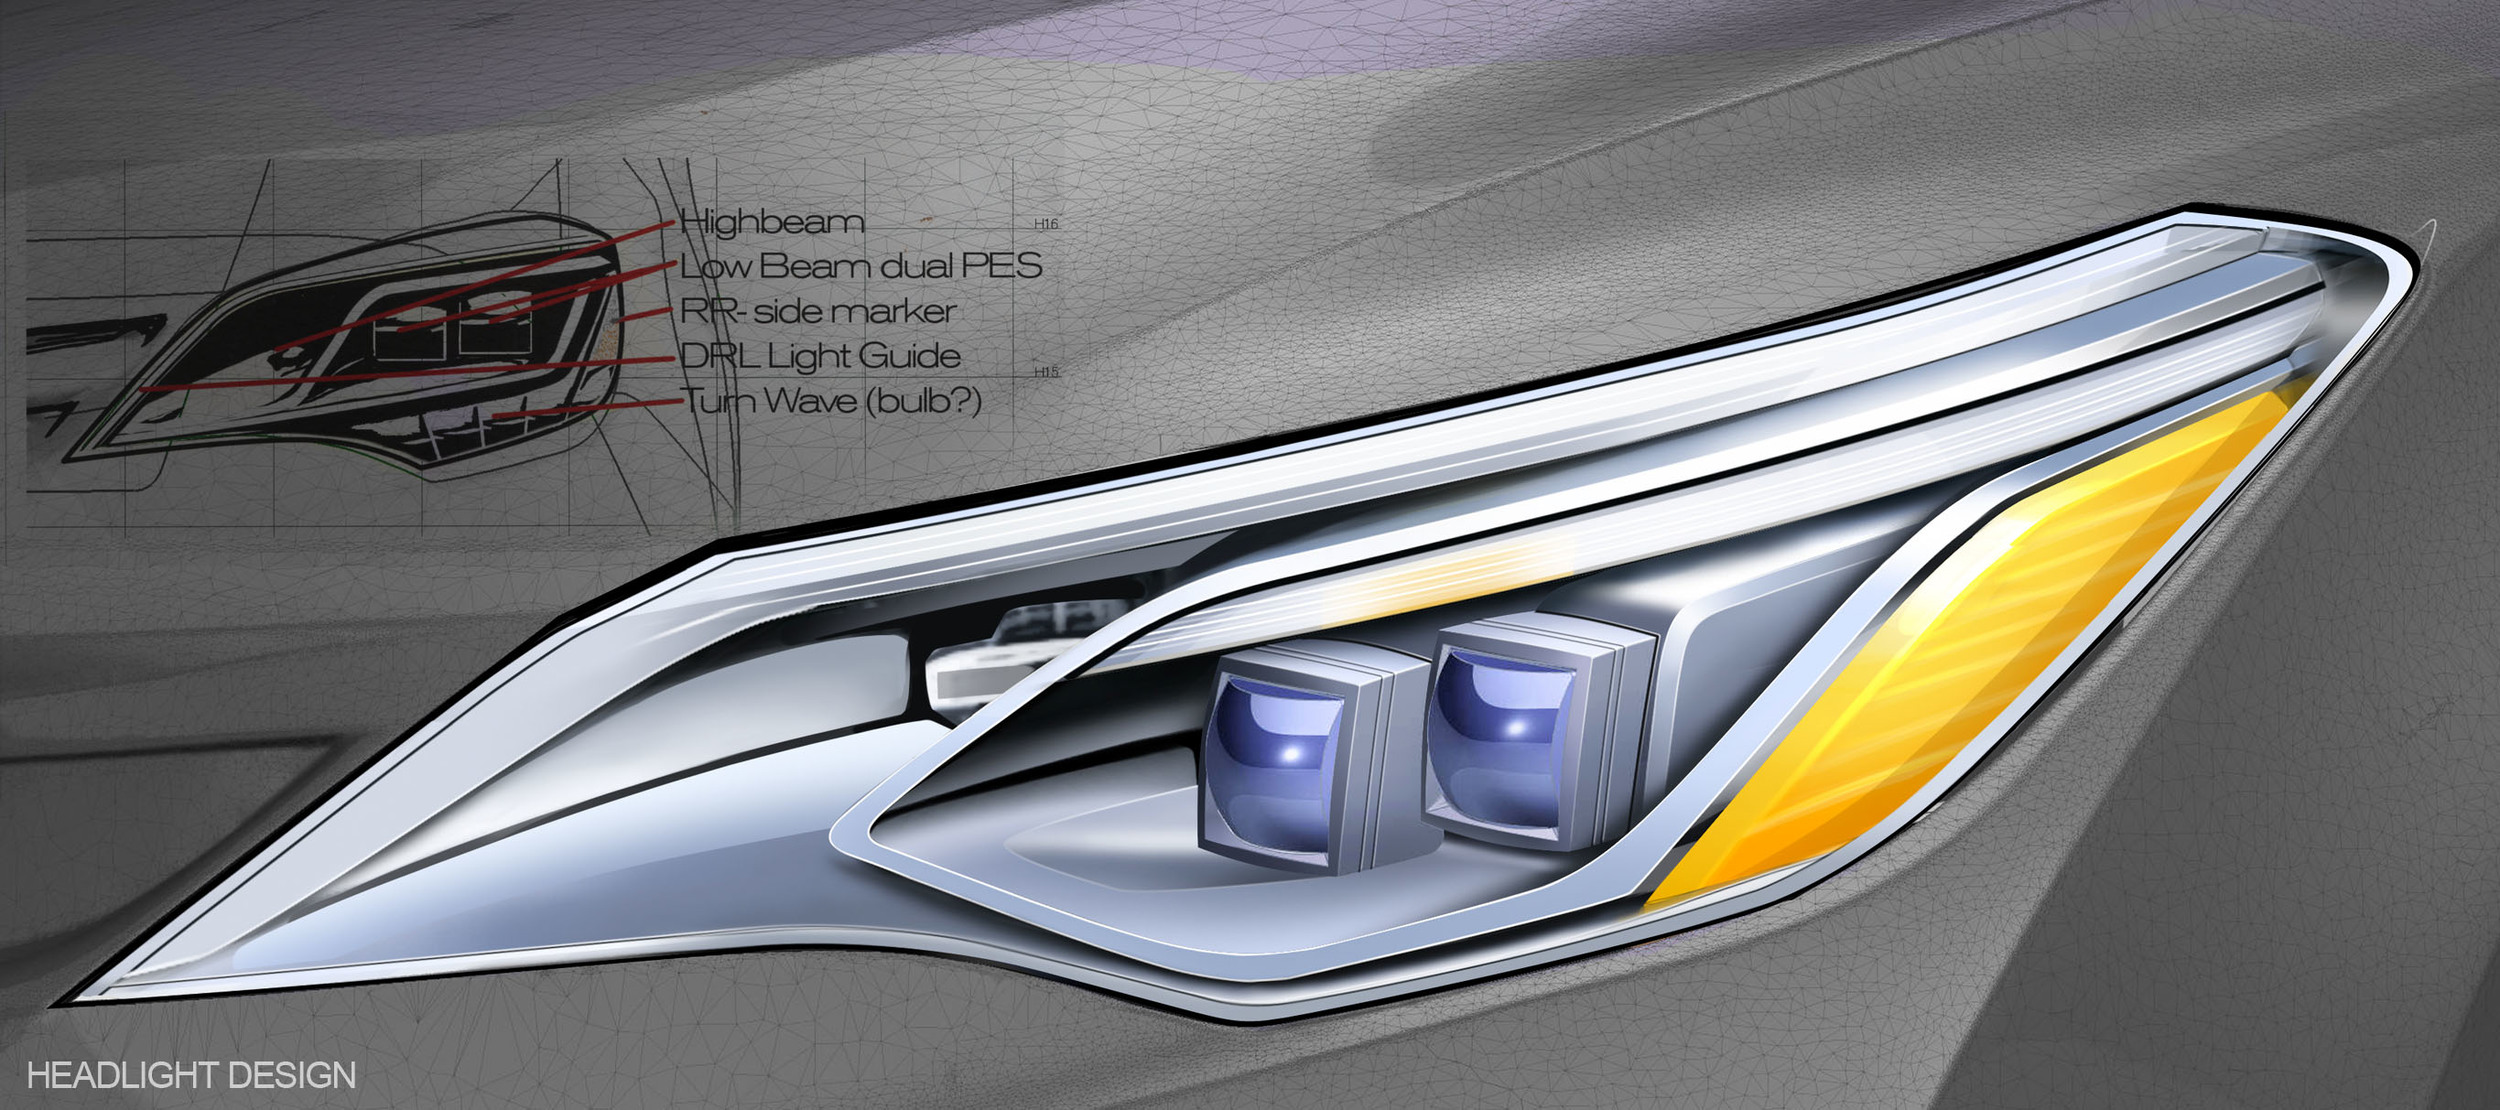 Headlight1.jpg